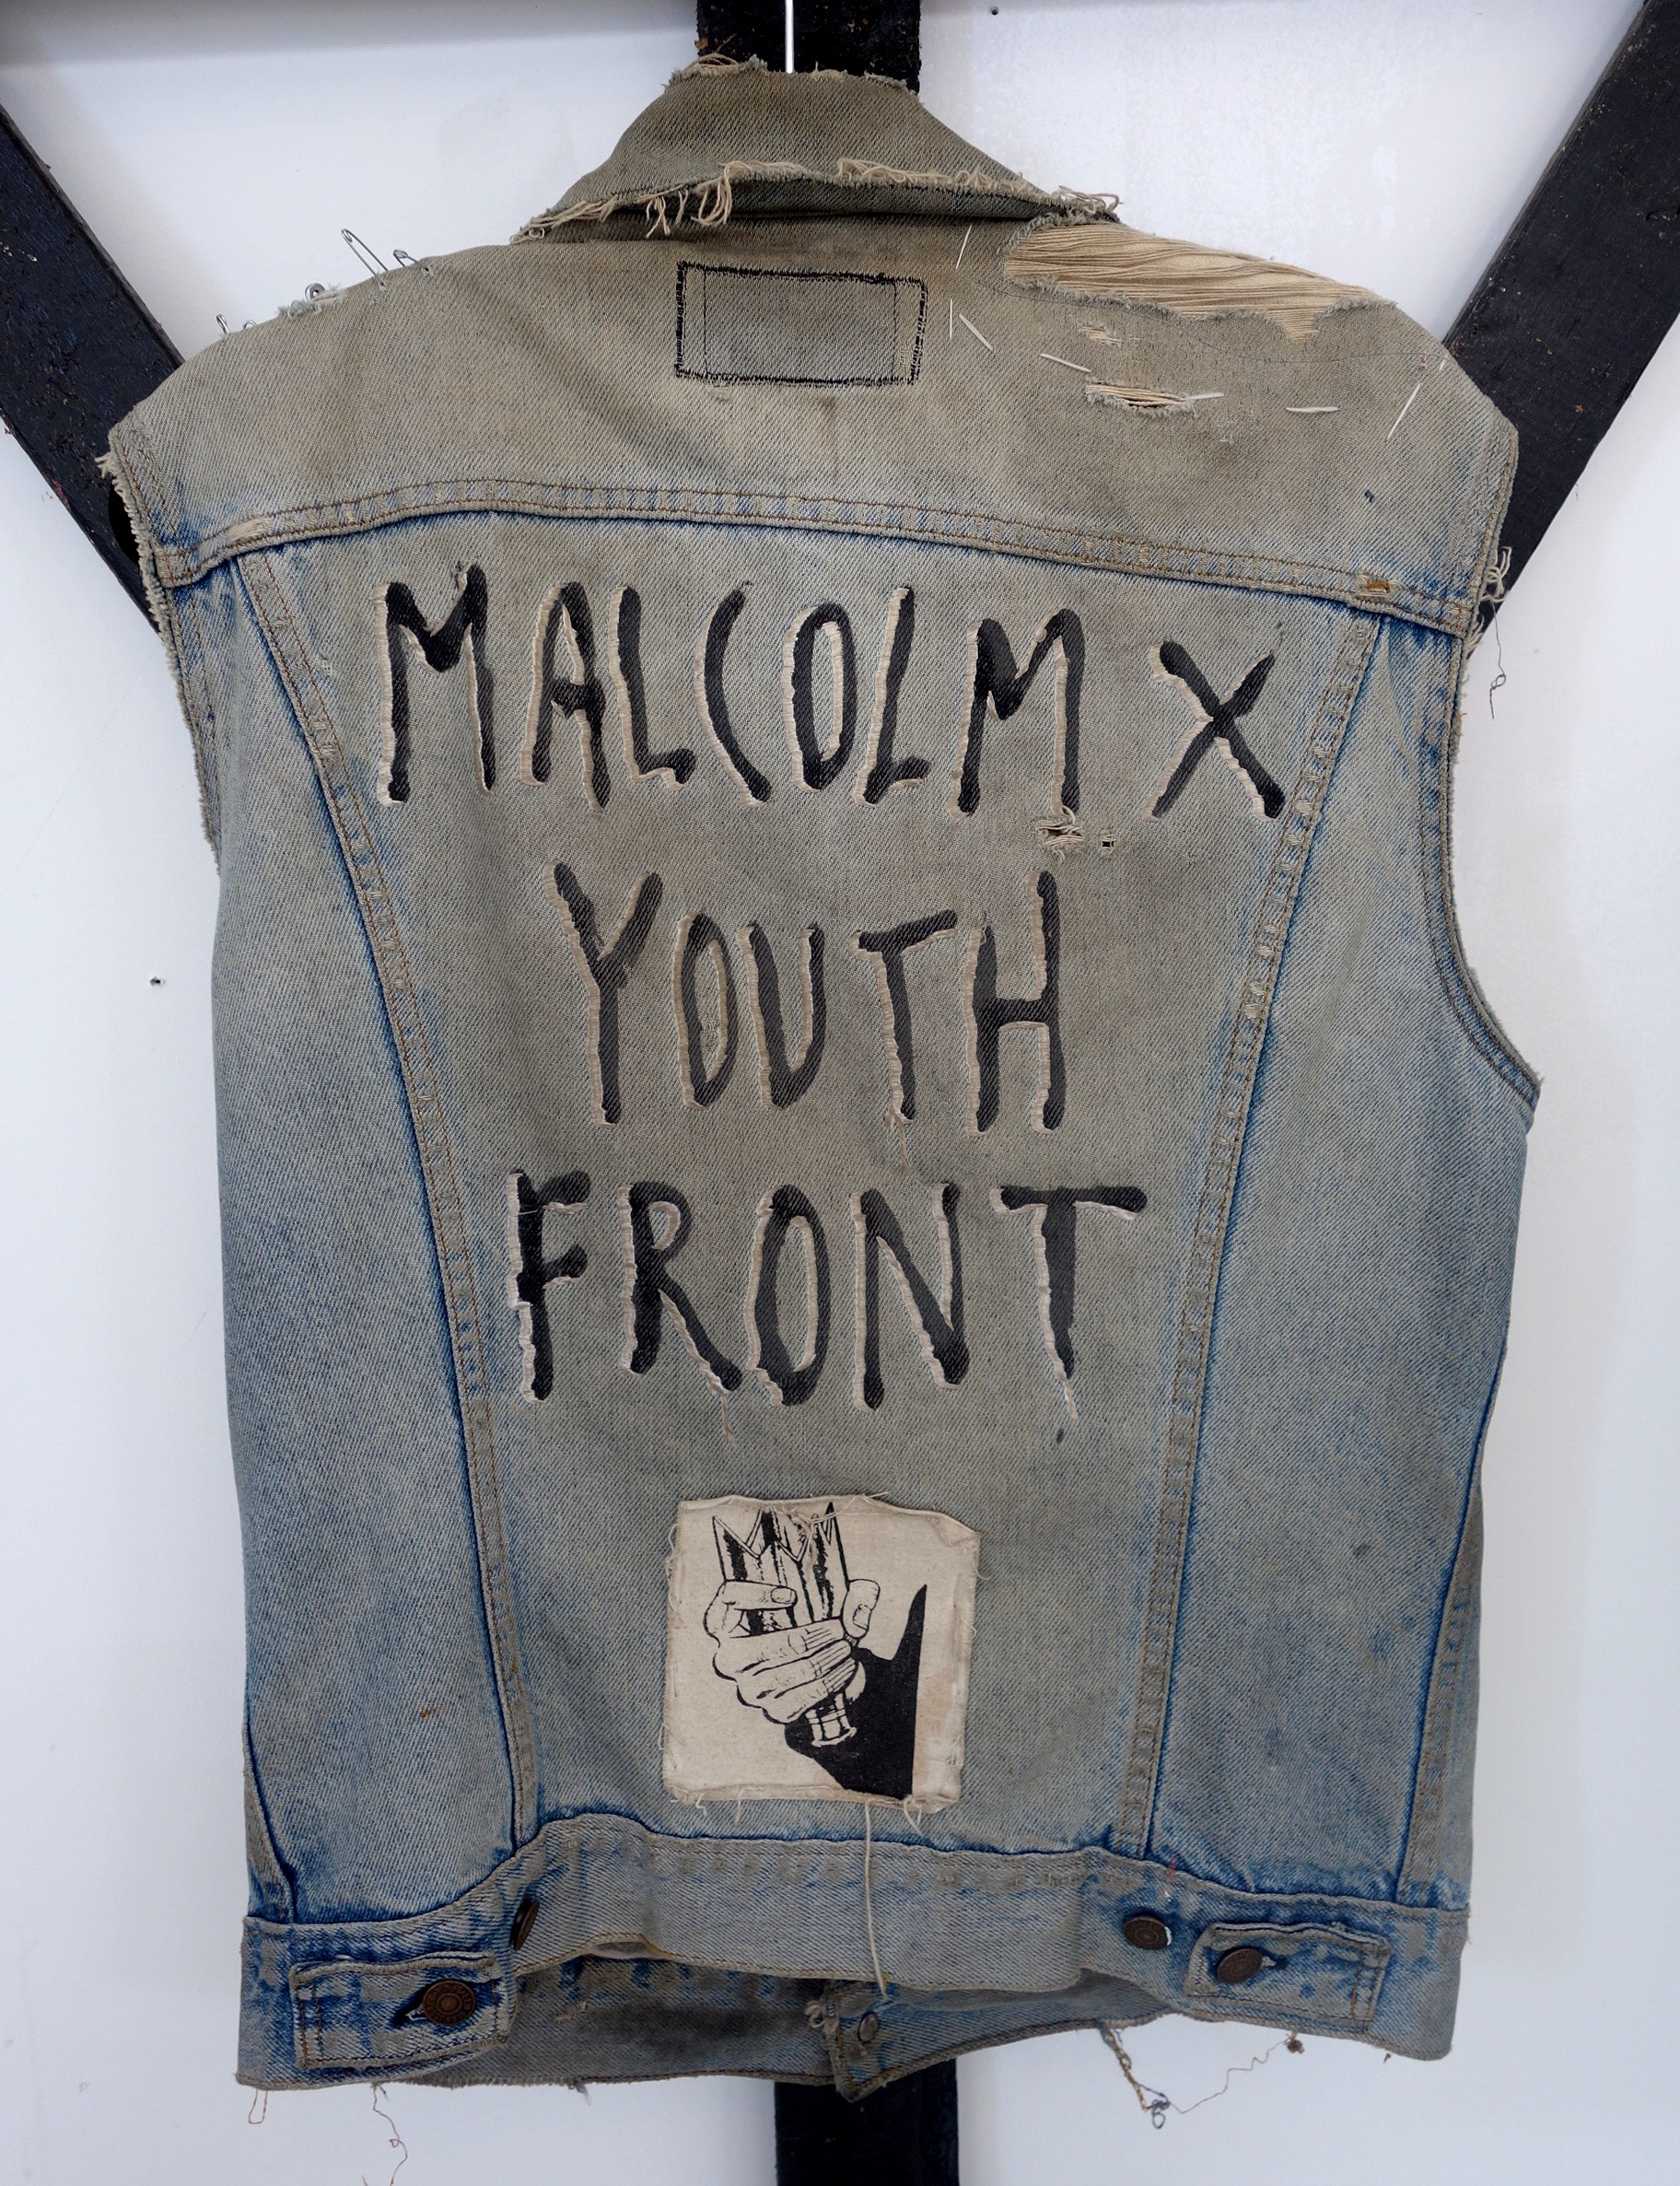 Malcom X Youth Front.jpg